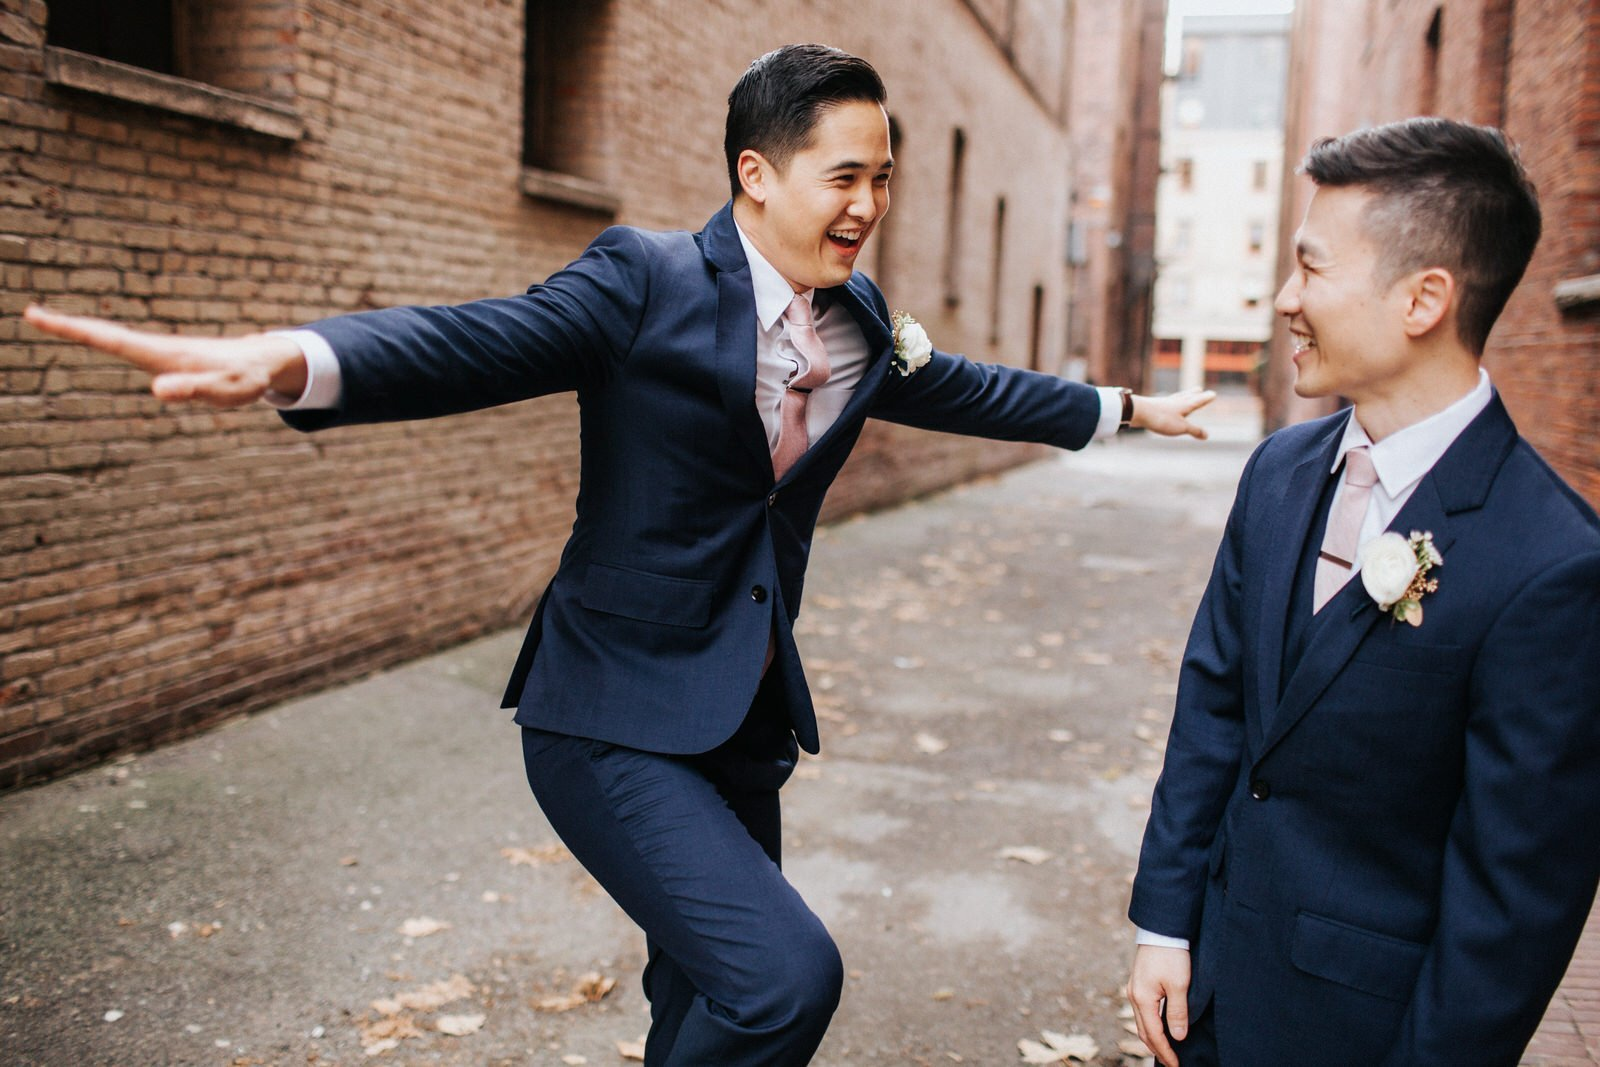 The groomsmen laugh and joke during photos